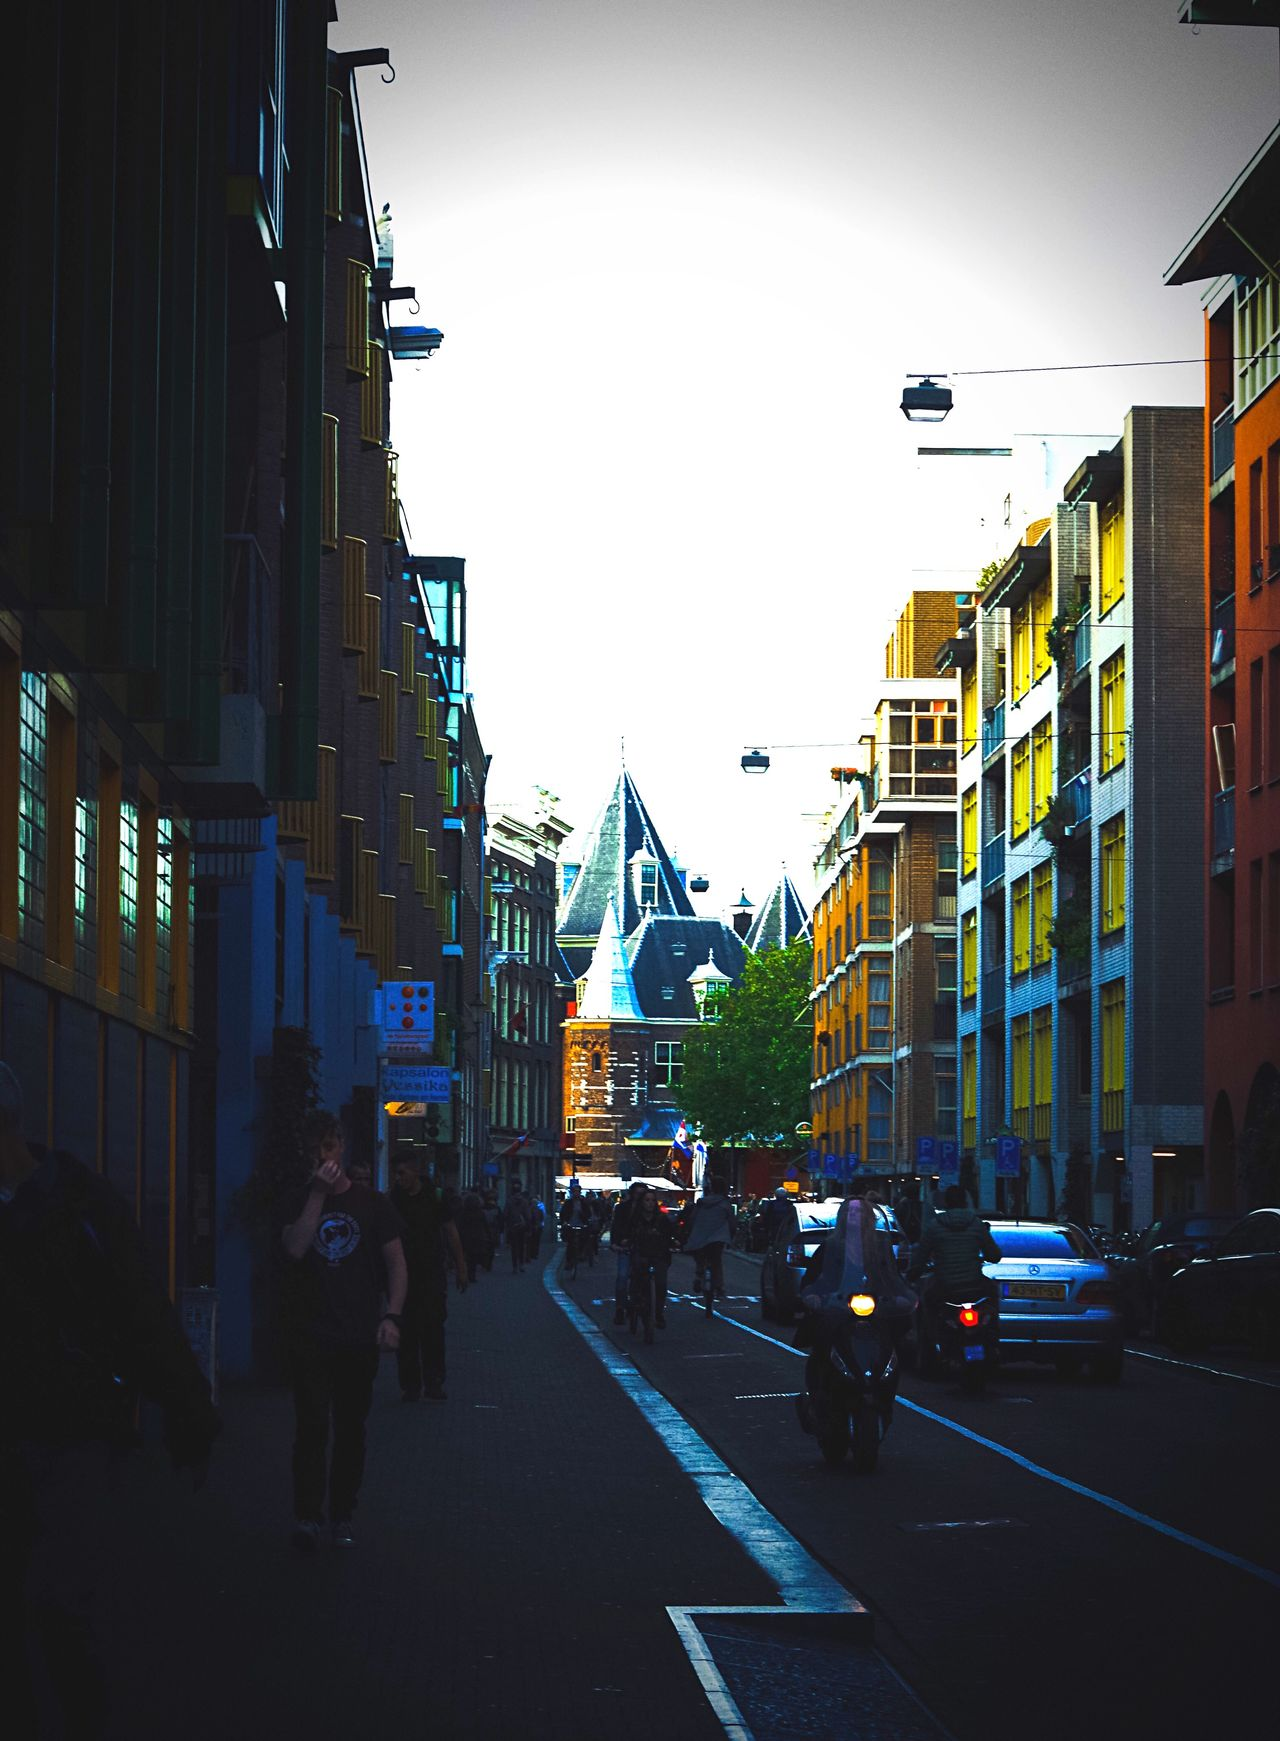 Building Exterior City Architecture Built Structure Street City Life City Street Outdoors Car Sky Land Vehicle The Way Forward Road Travel Destinations Real People Day Amsterdam